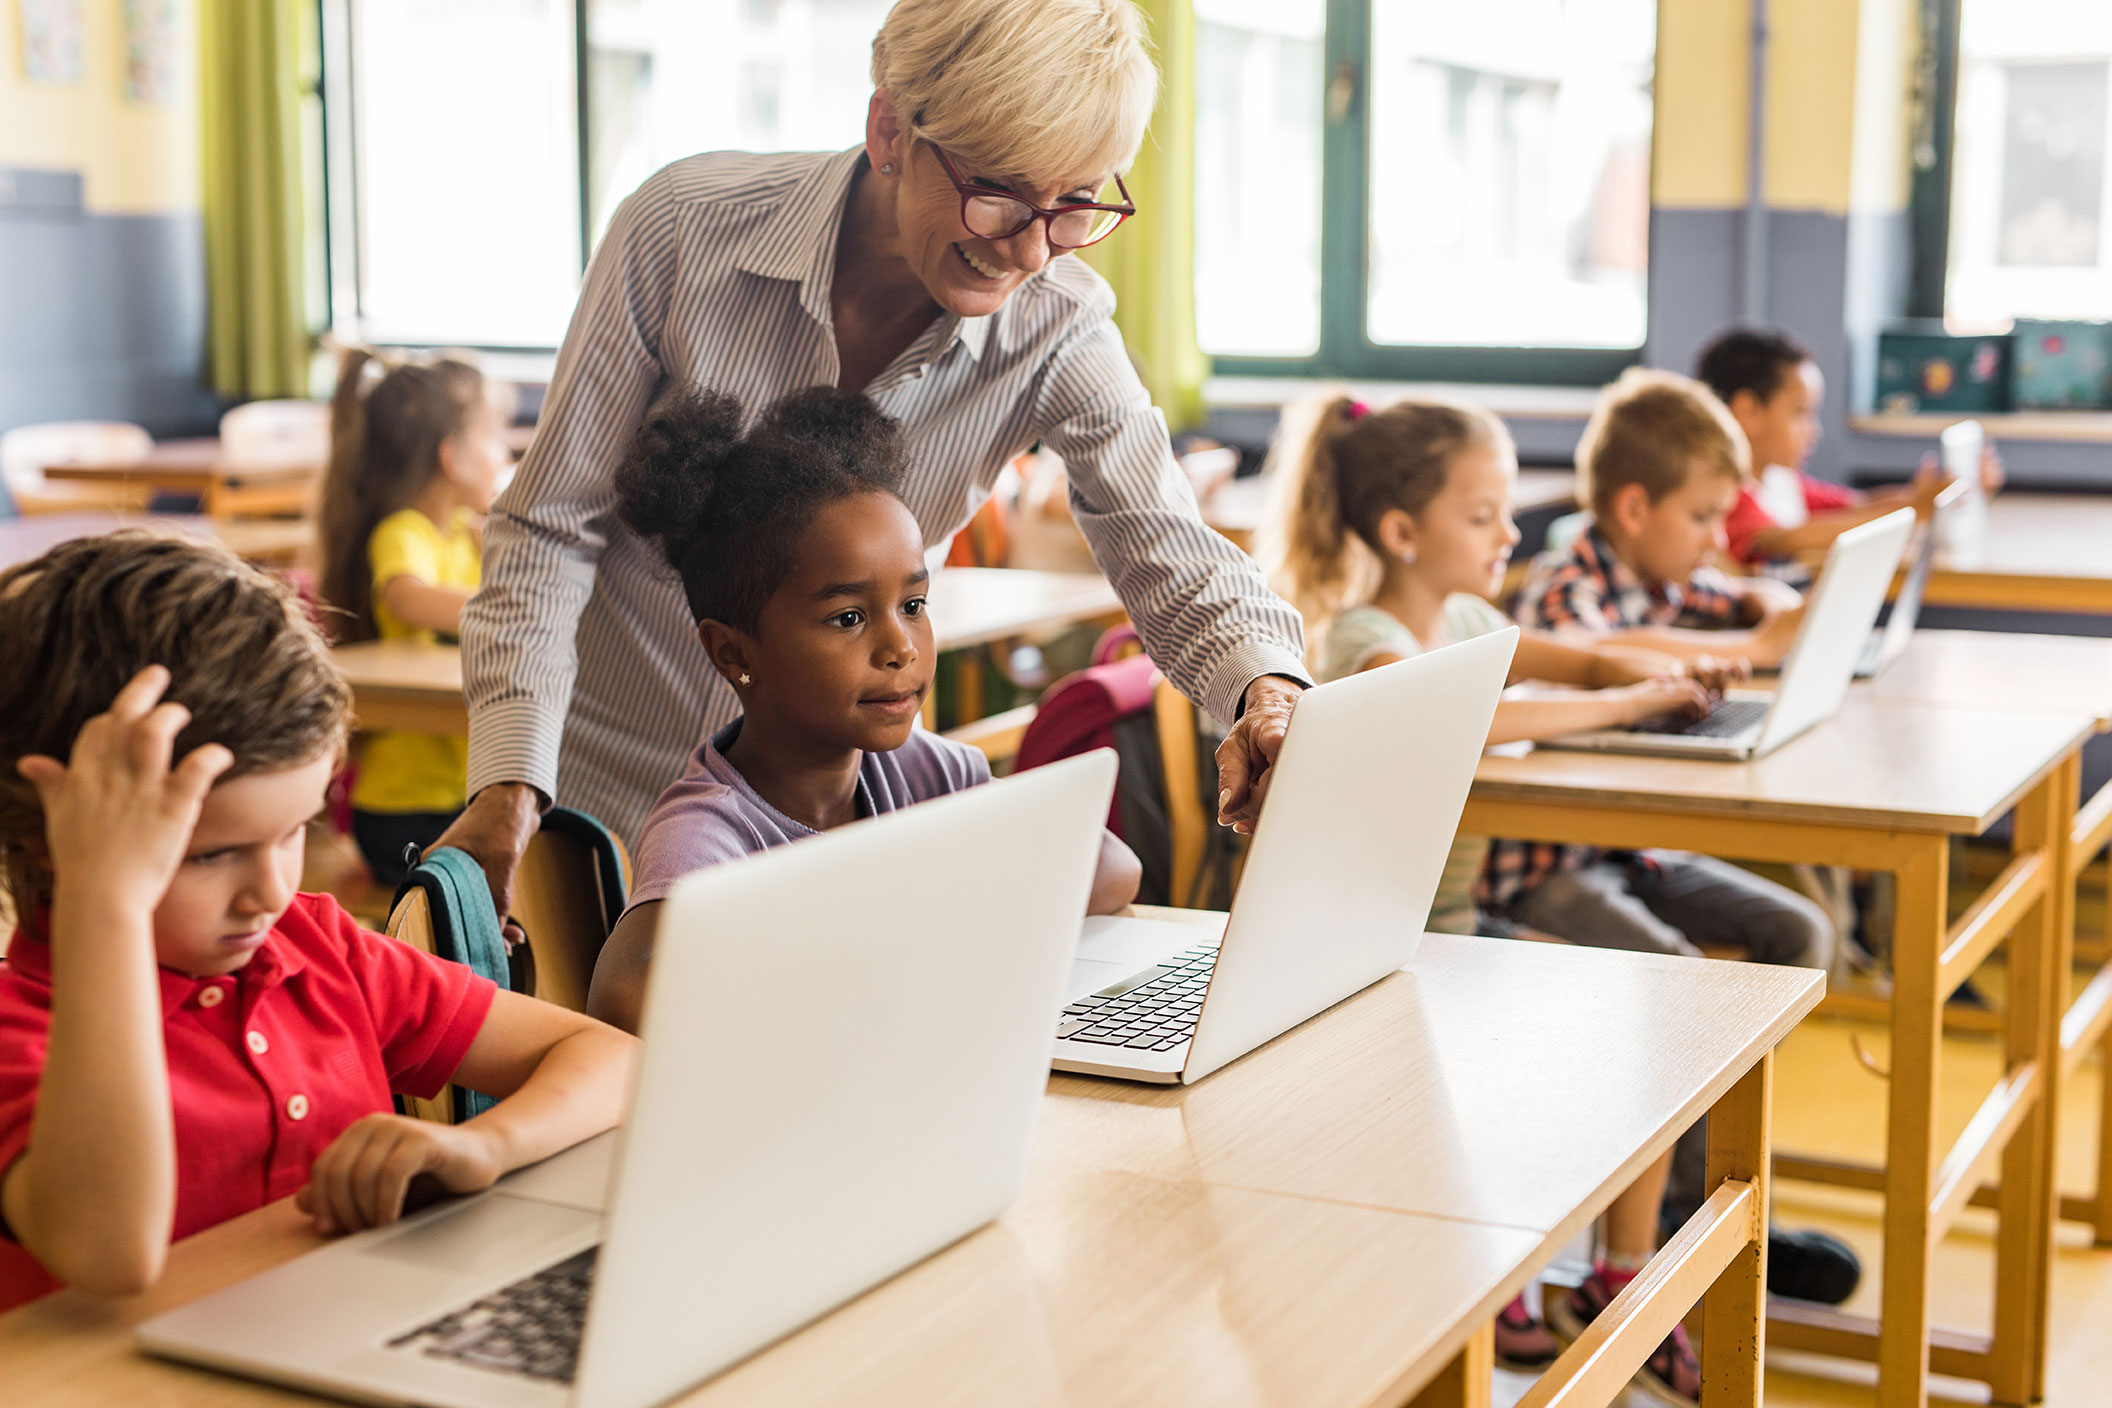 Teacher with students in classroom setting with computers